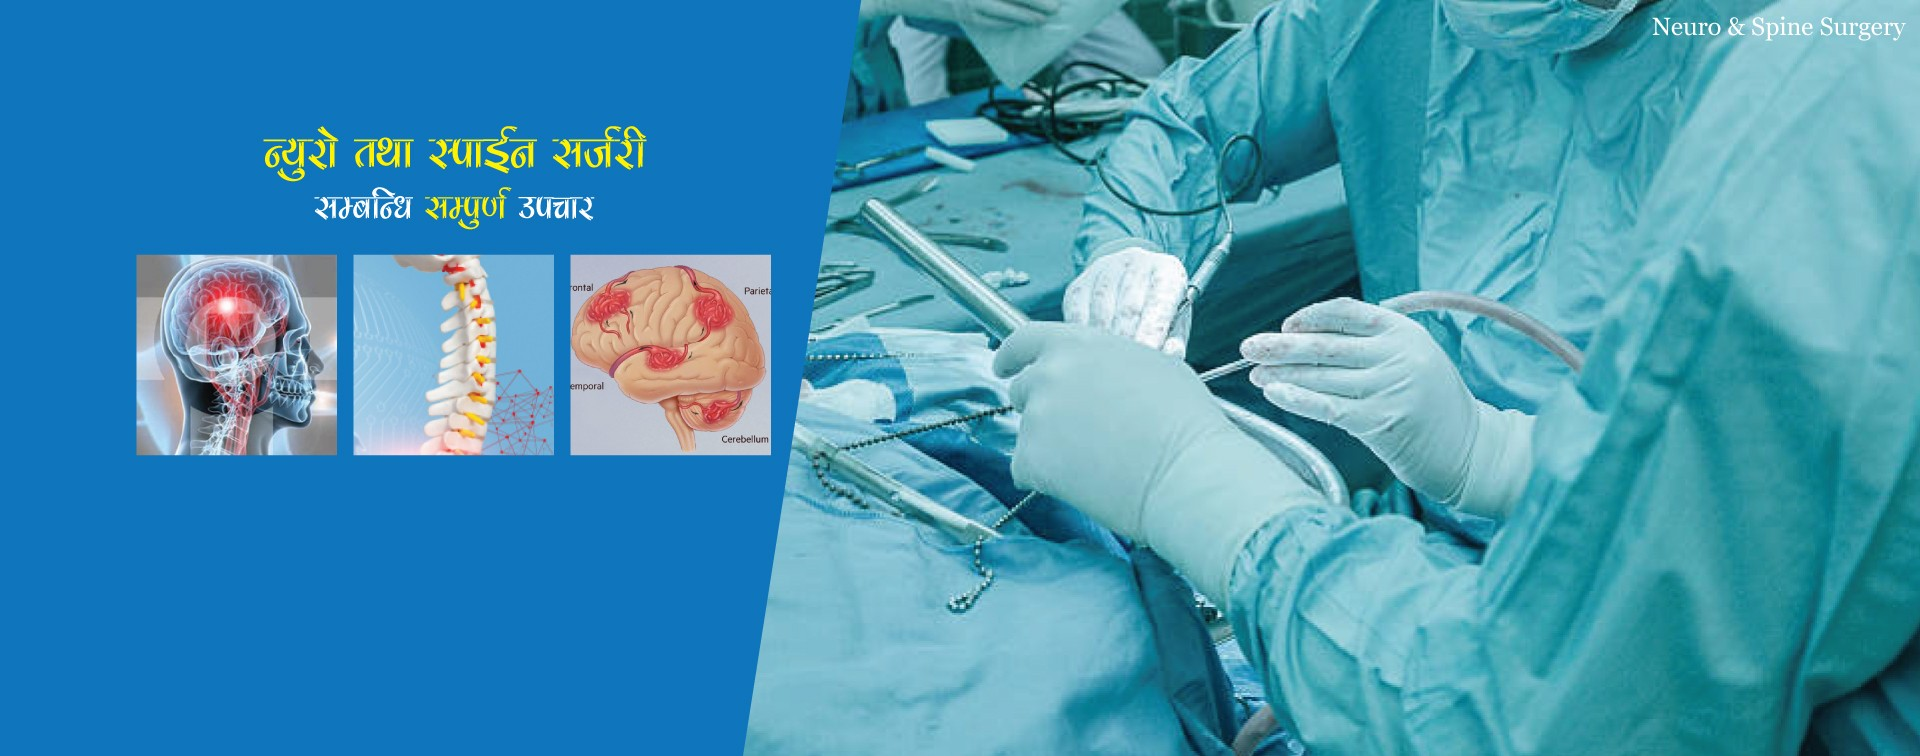 Neuro & Spine Surgery